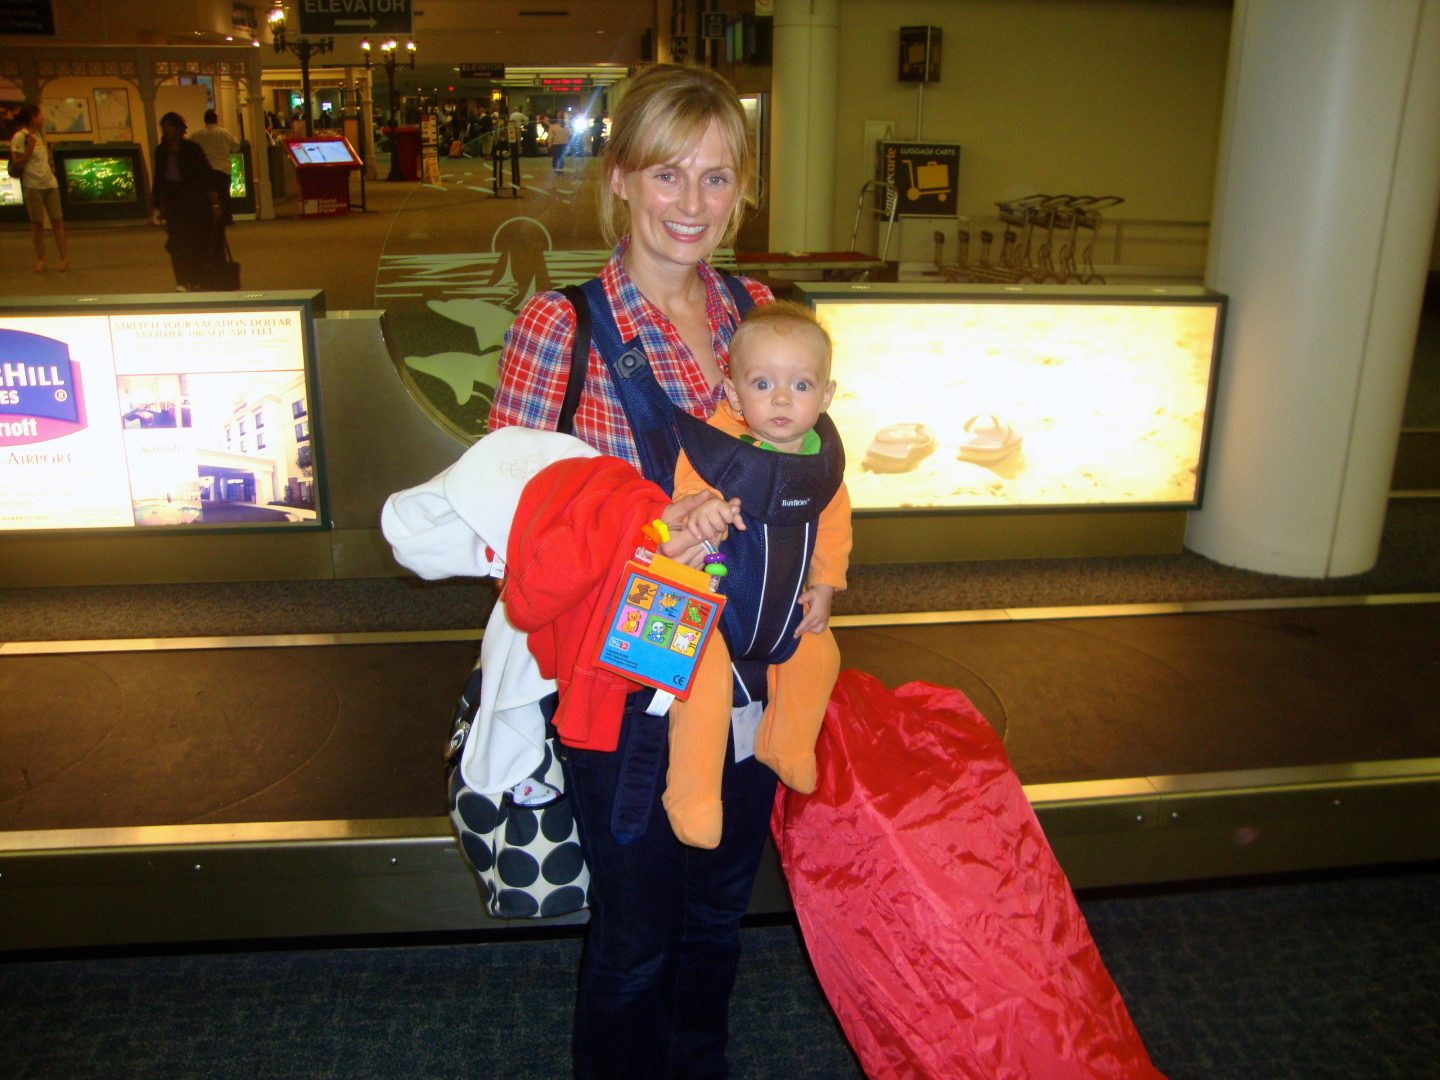 Flying with a baby packing guide